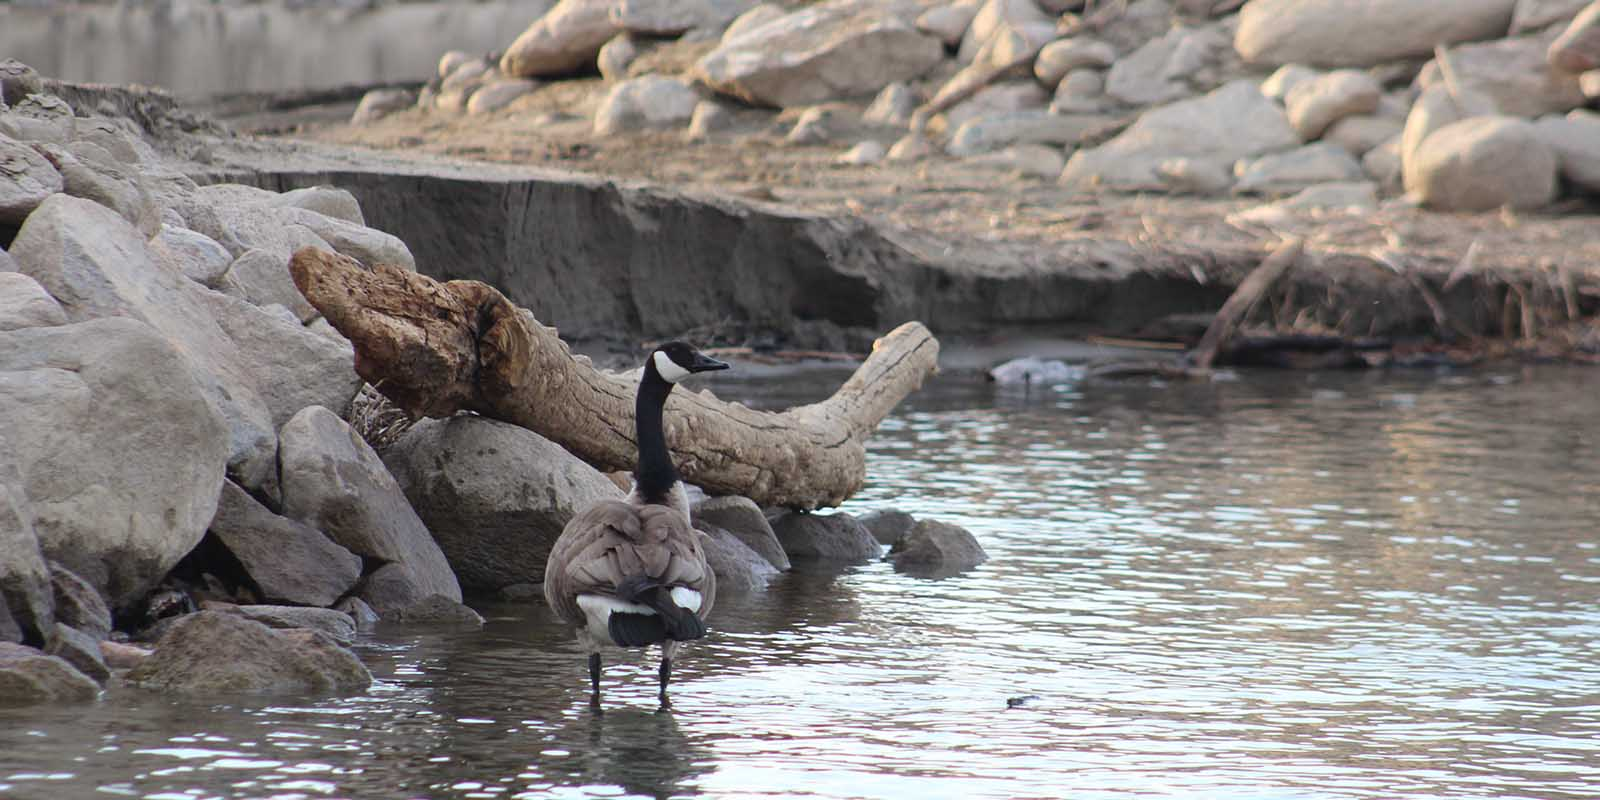 Canada Goose Standing in River